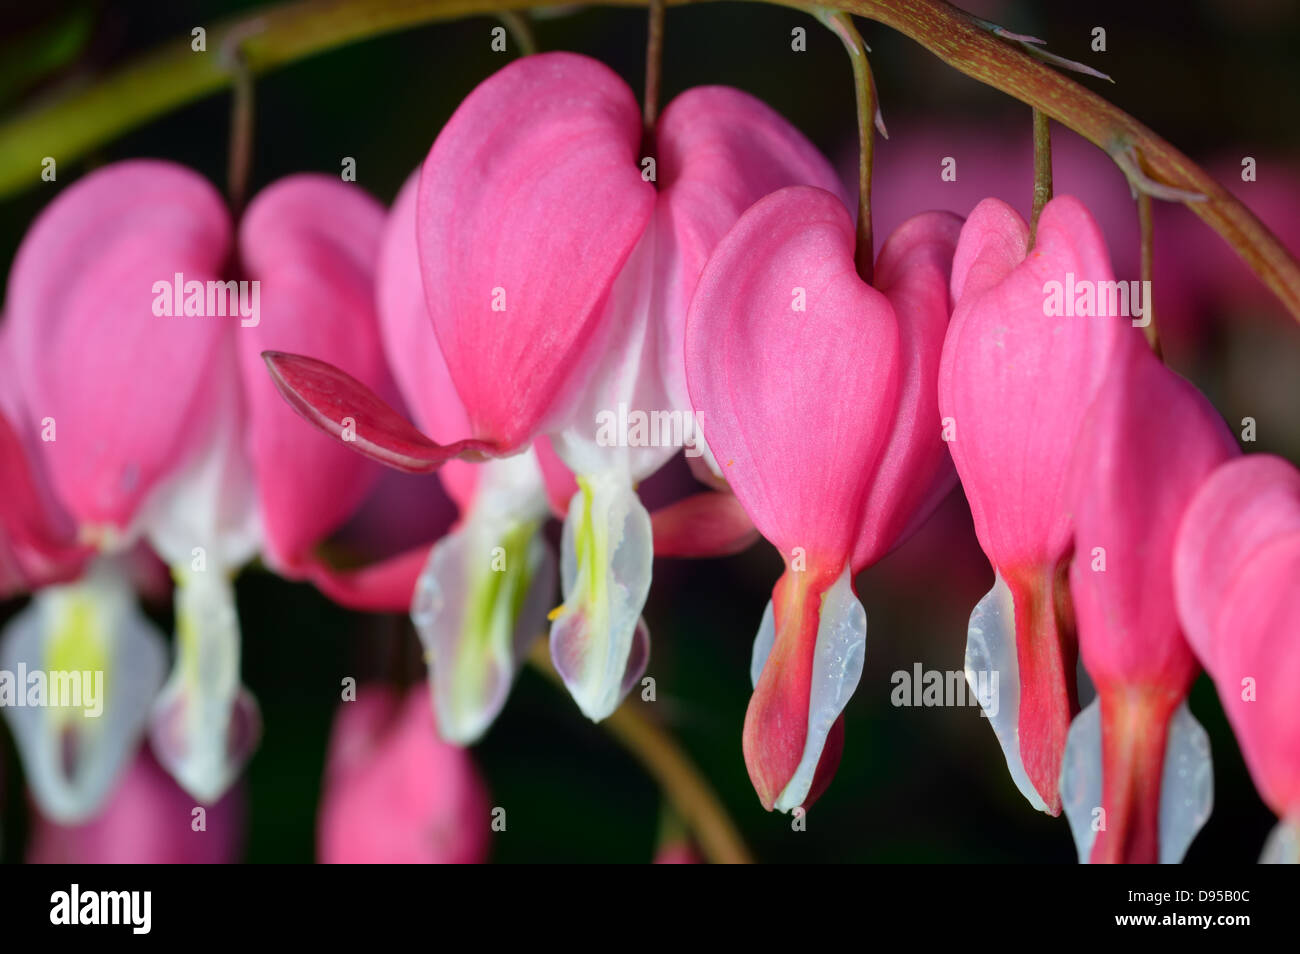 Pink flower. Lamprocapnos spectabilis (formerly Dicentra spectabilis) - Bleeding Heart in spring garden. Stock Photo